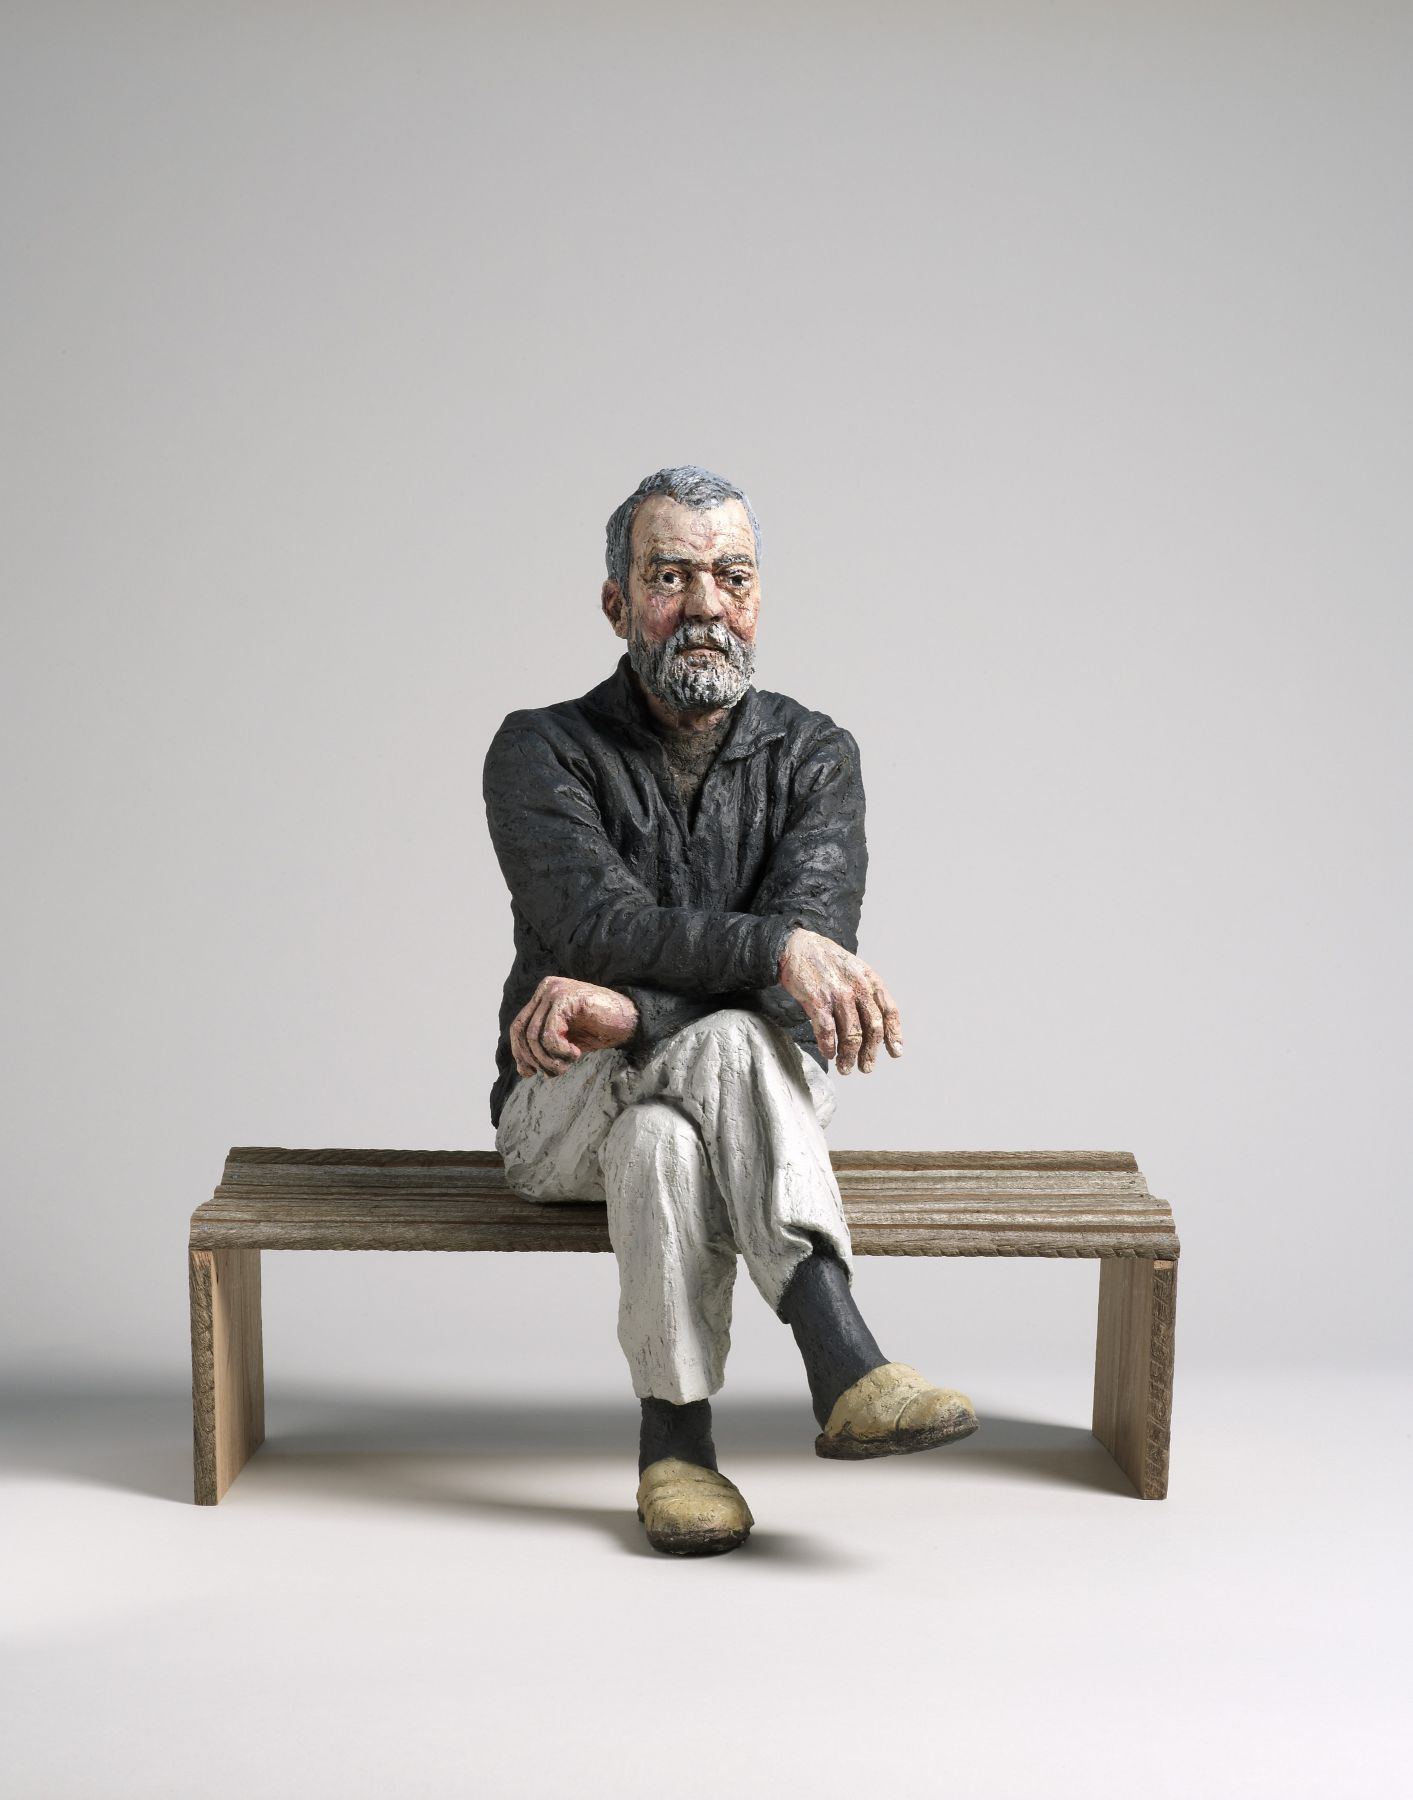 sean henry, Maquette for John (Seated) [SOLD], 2012, bronze, oil paint, wood, 17 x 15 x 12 inches, Edition of 9